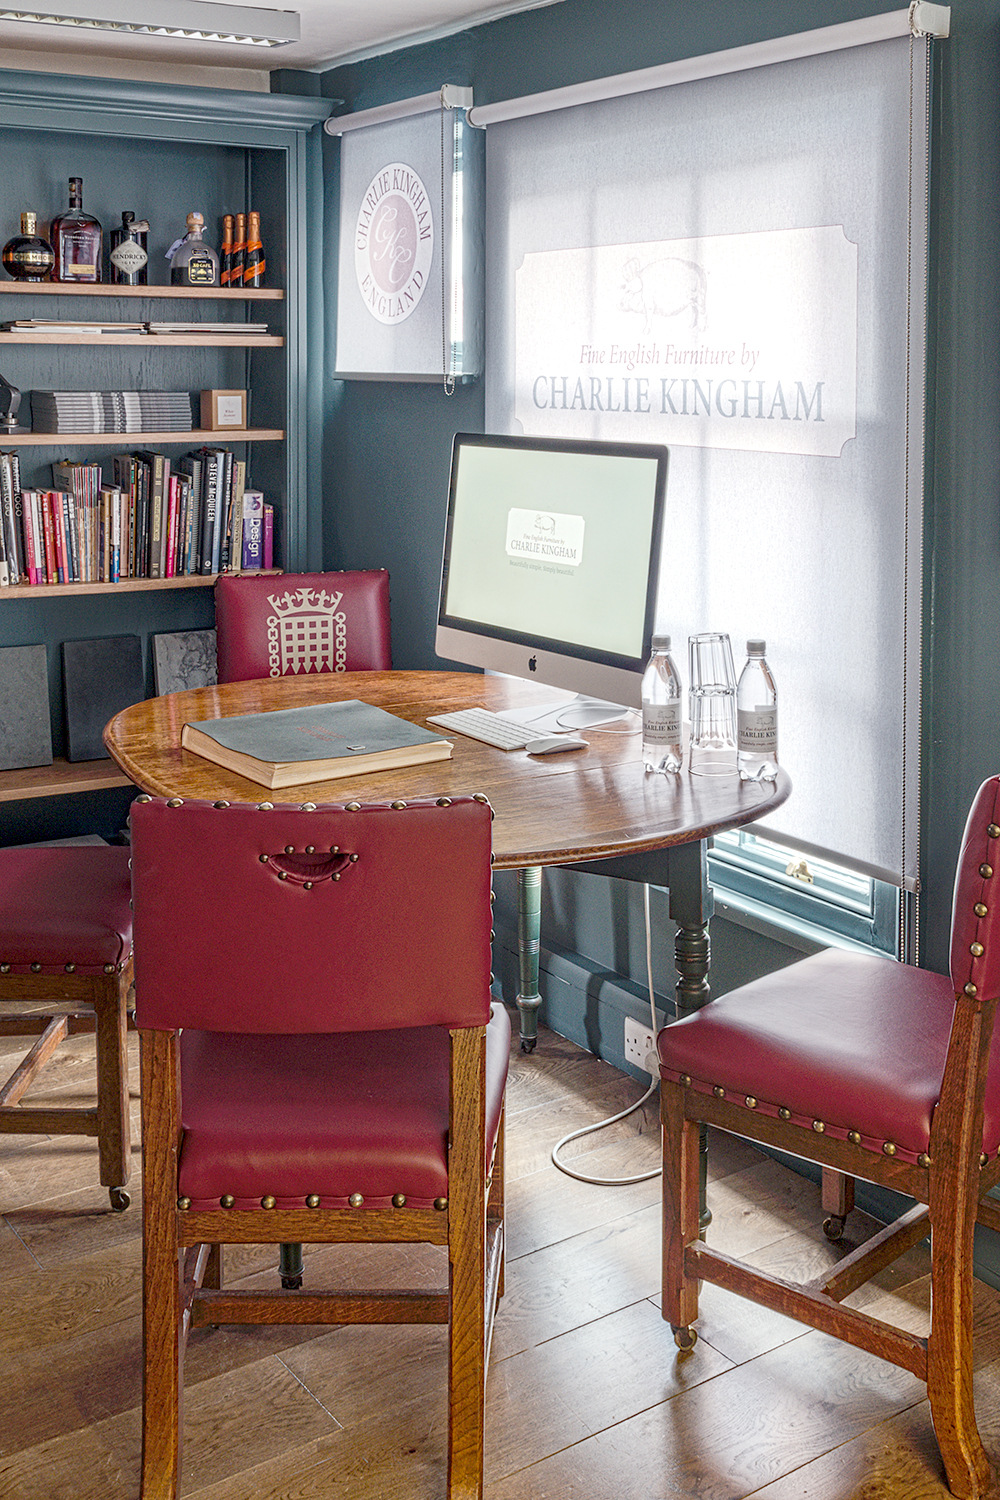 Charlie Kingham Guildford showroom design room with red leather chairs and a Mac with shelving and books.